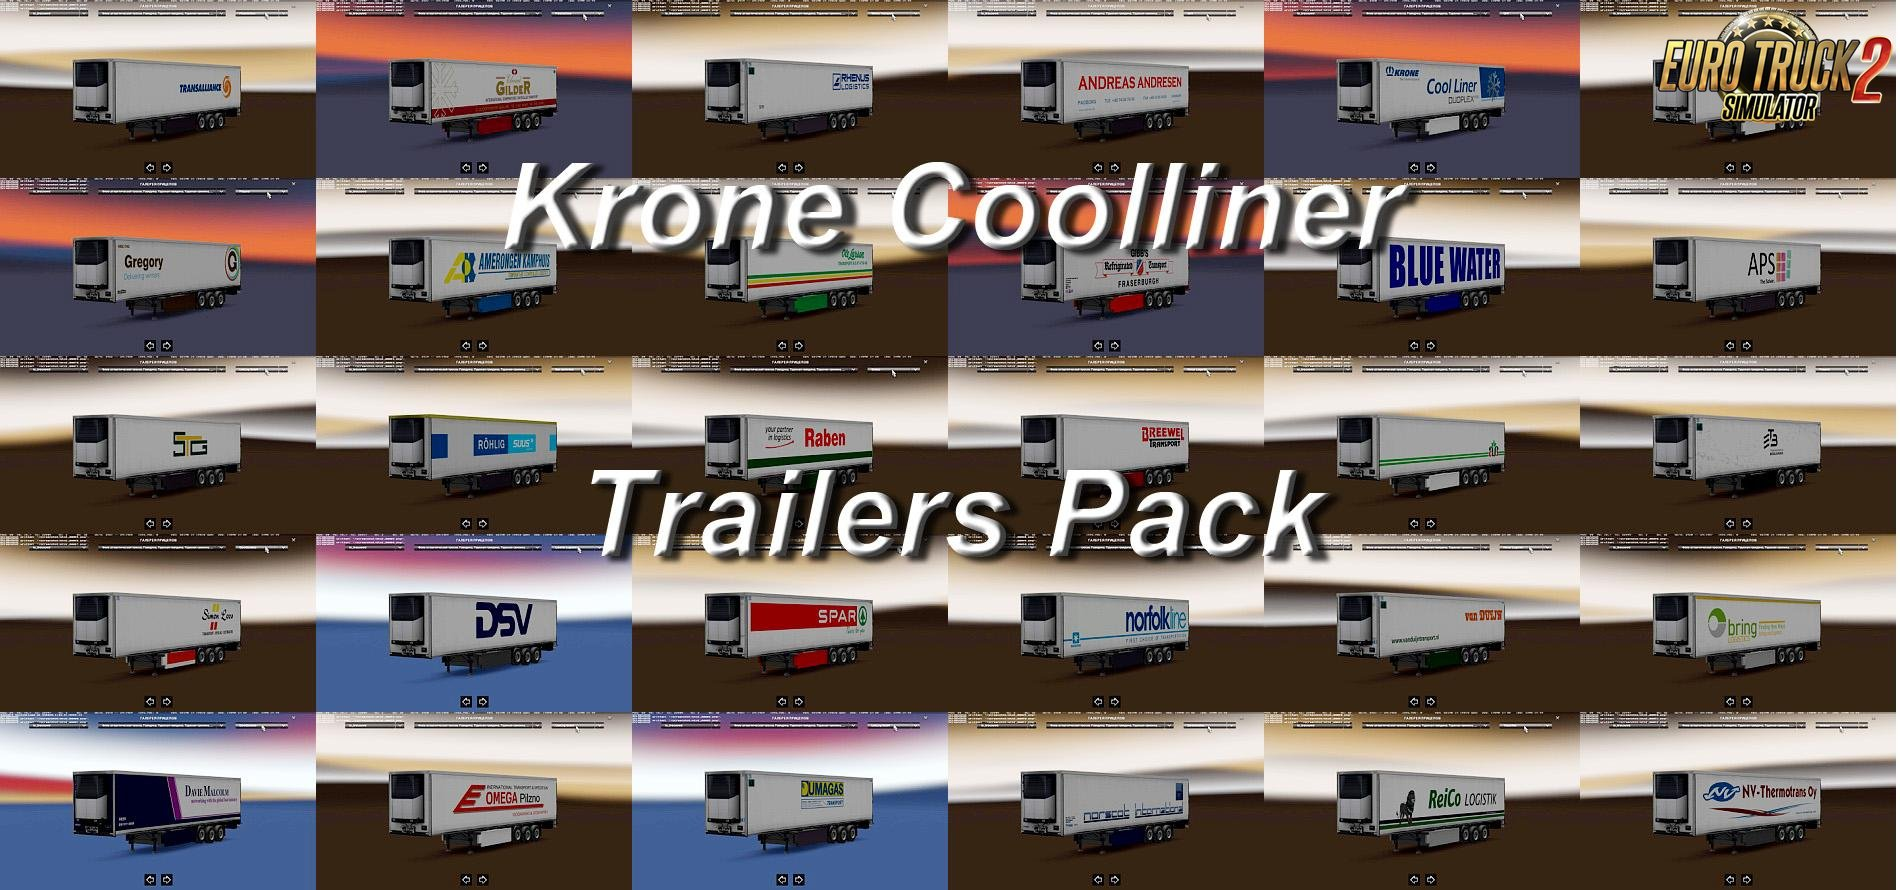 Trailers Pack Krone Coolliner for Ets2